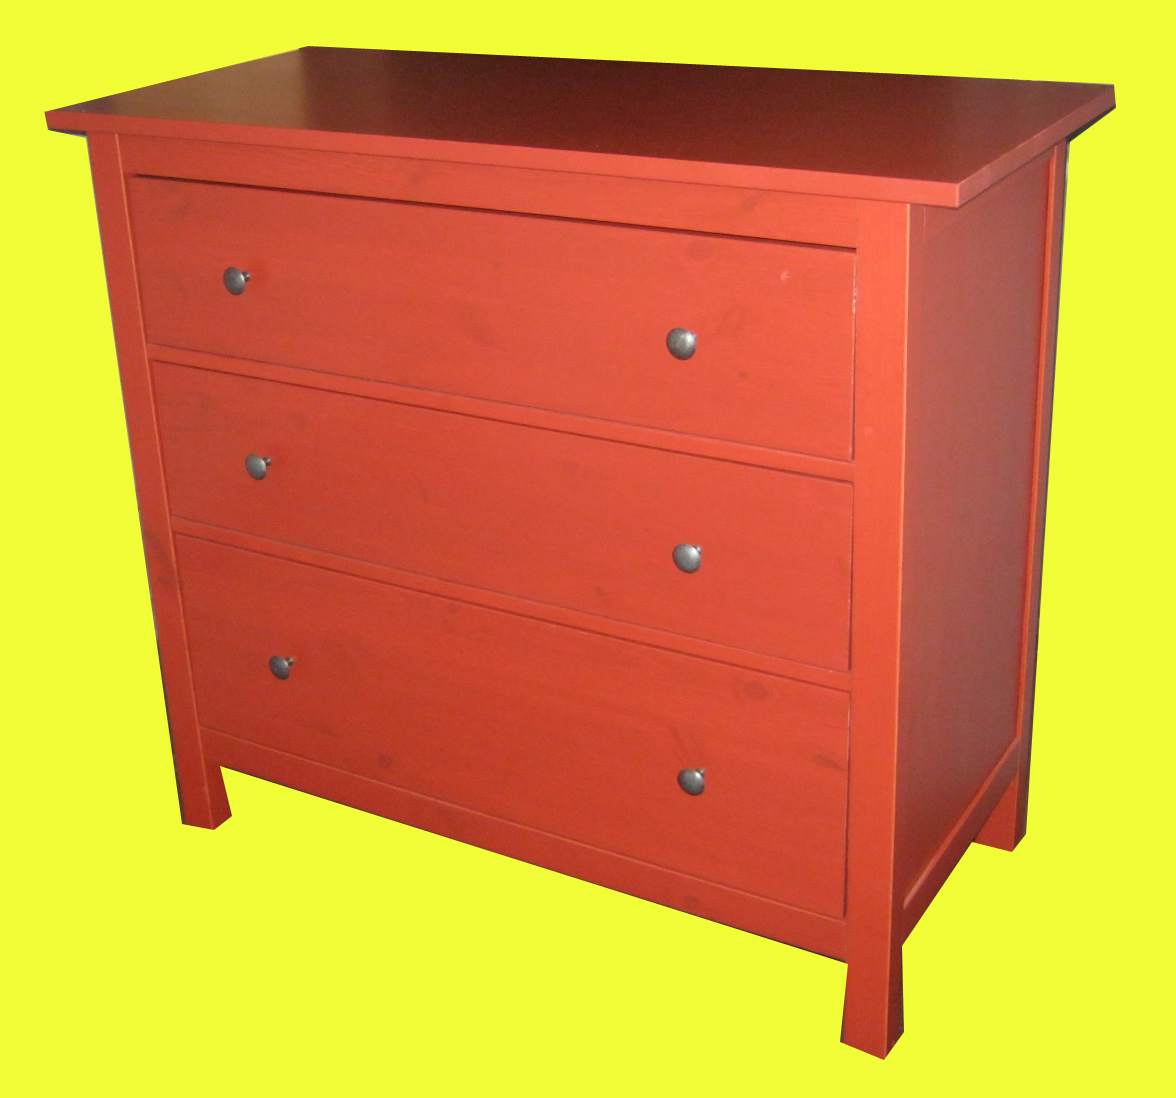 ikea hemnes red dresser sold ikea hemnes bett couch. Black Bedroom Furniture Sets. Home Design Ideas